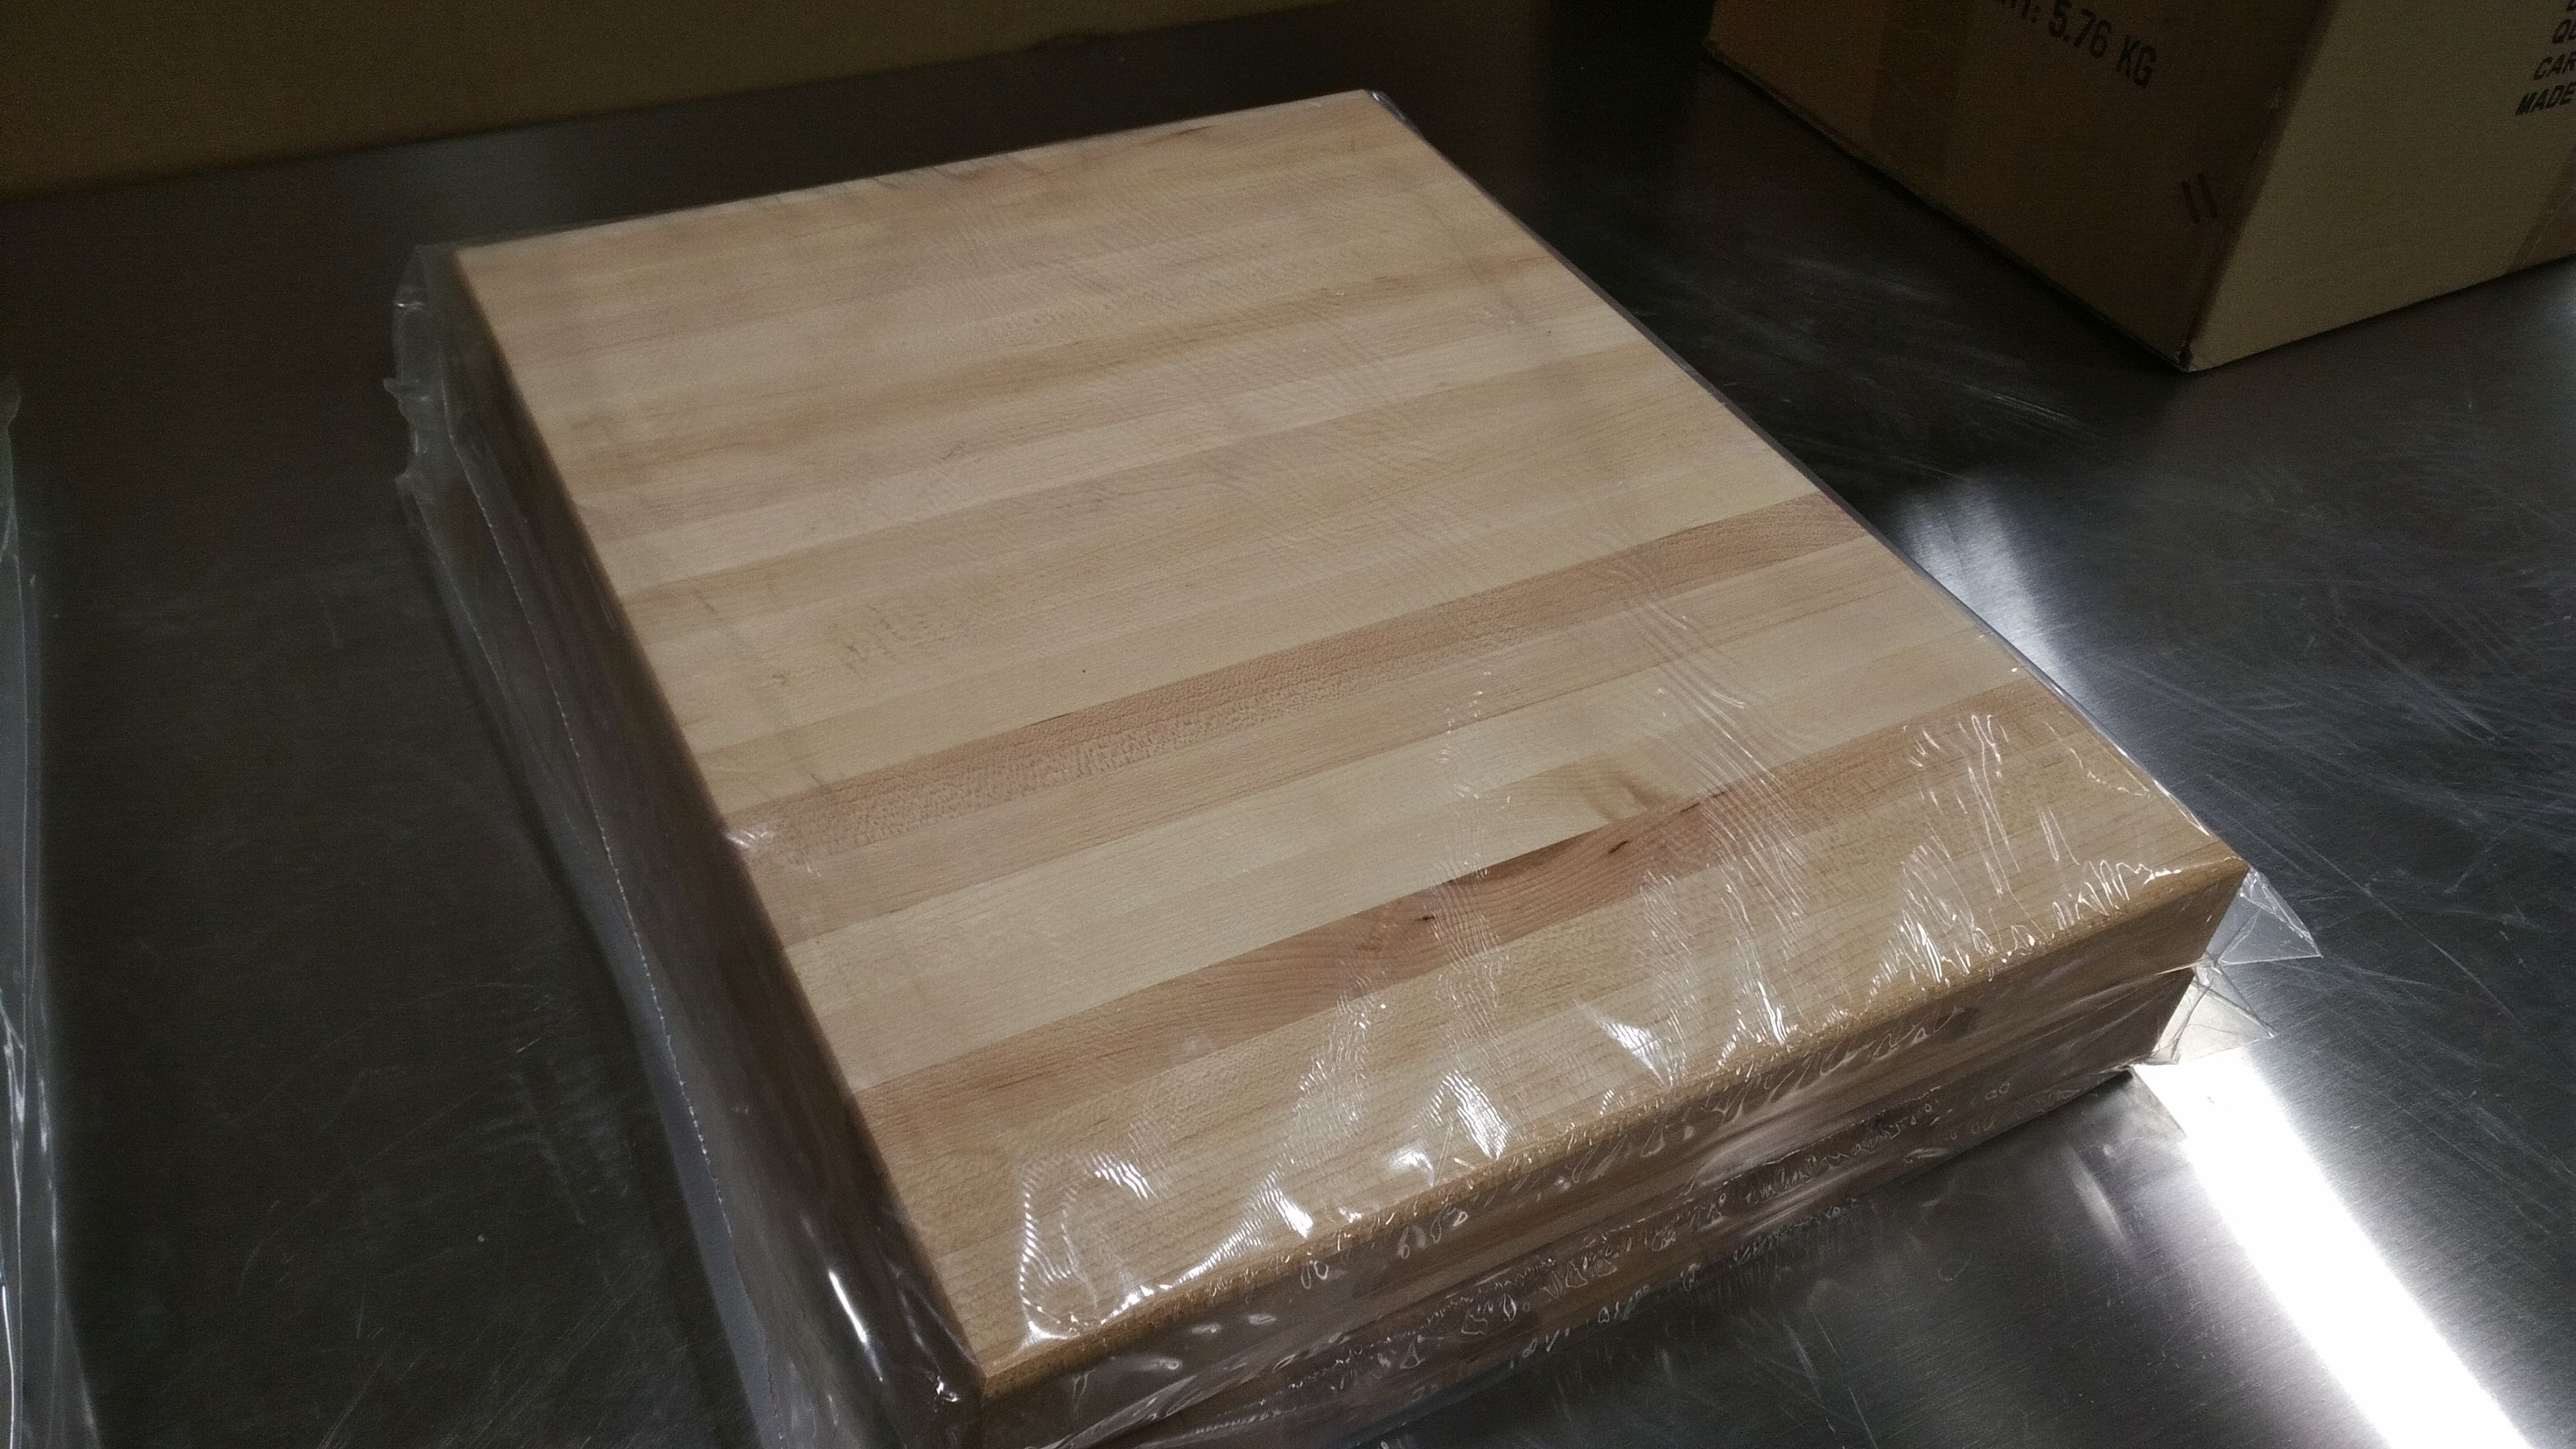 """Lot 8 - 16"""" x 12"""" x 1.5"""" Hard Canadian Maple Carving Board"""